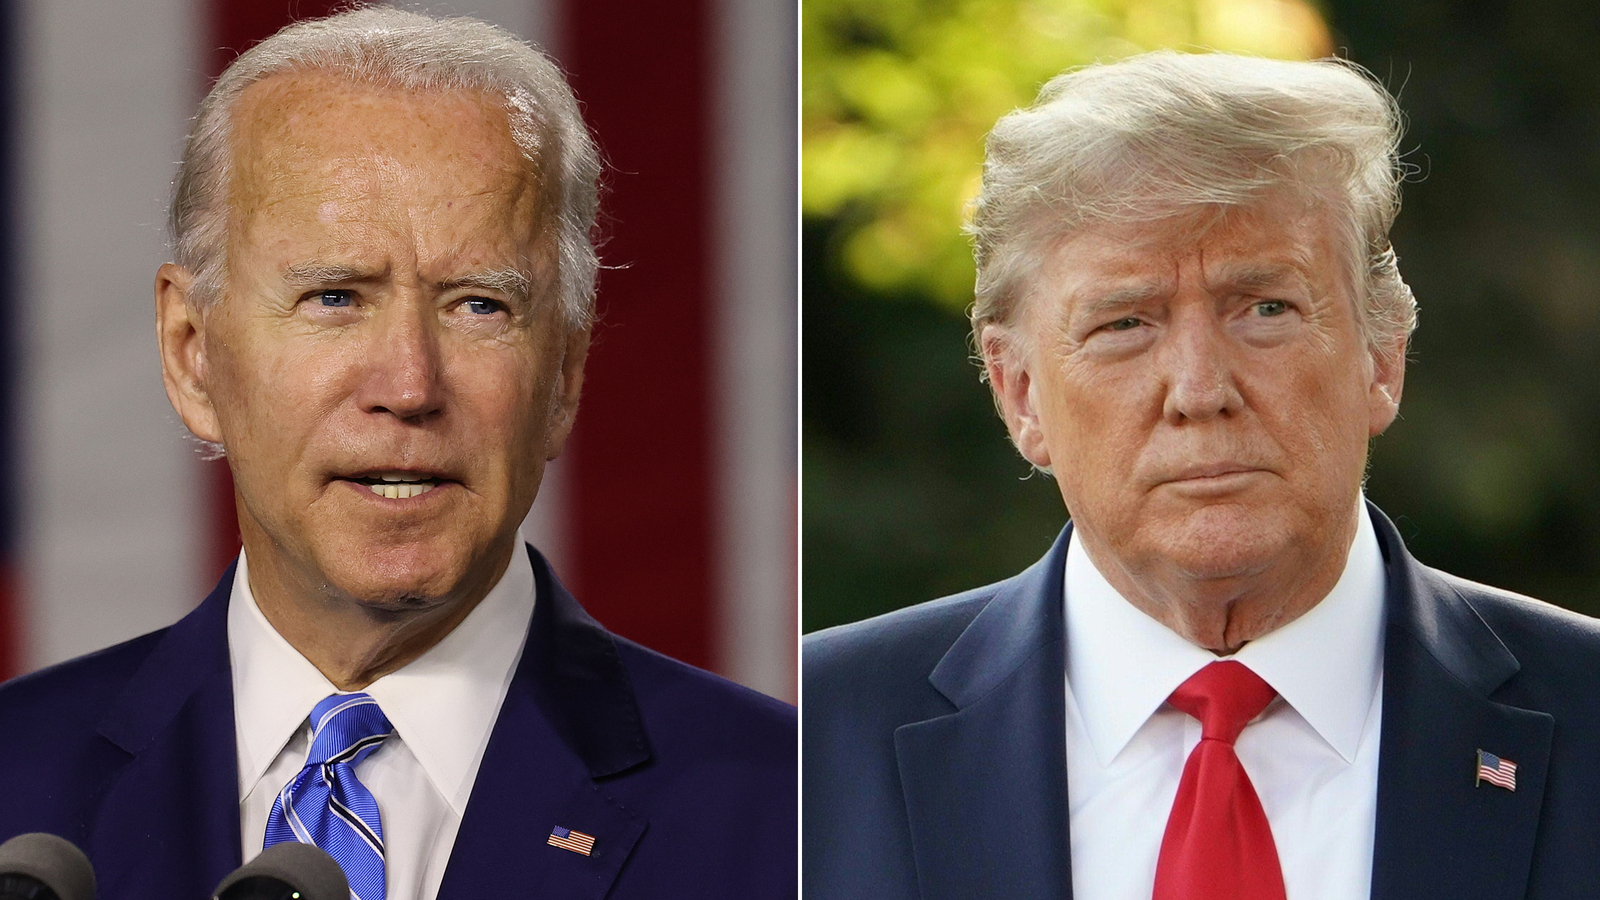 Biden clarifies he has not taken cognitive test